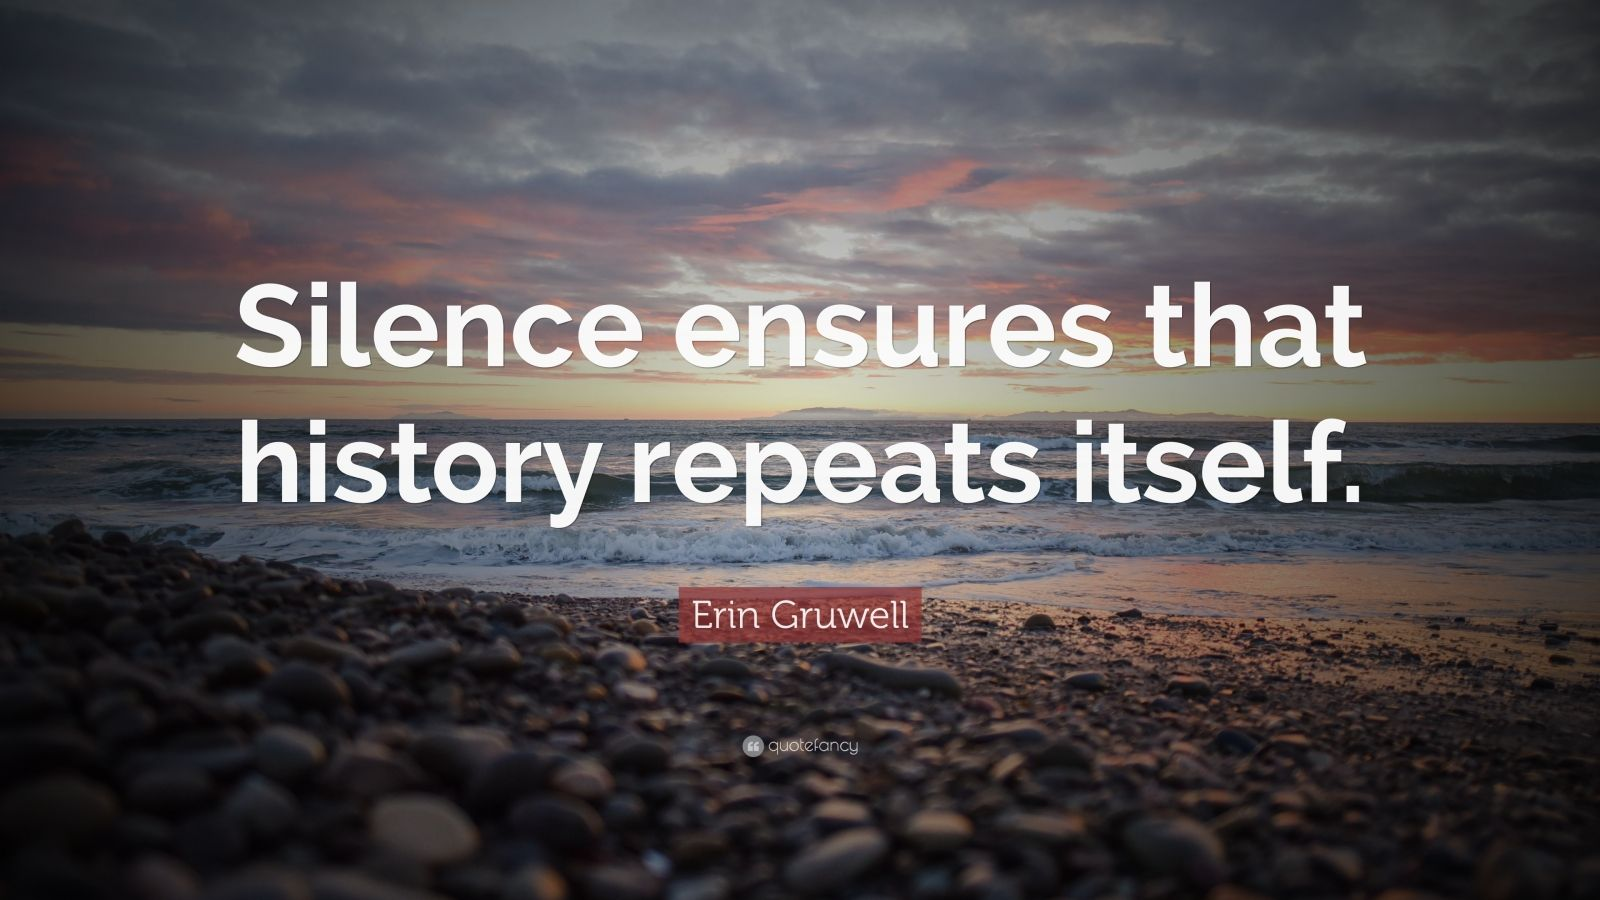 Swami Vivekananda Quotes Wallpaper Erin Gruwell Quote Silence Ensures That History Repeats